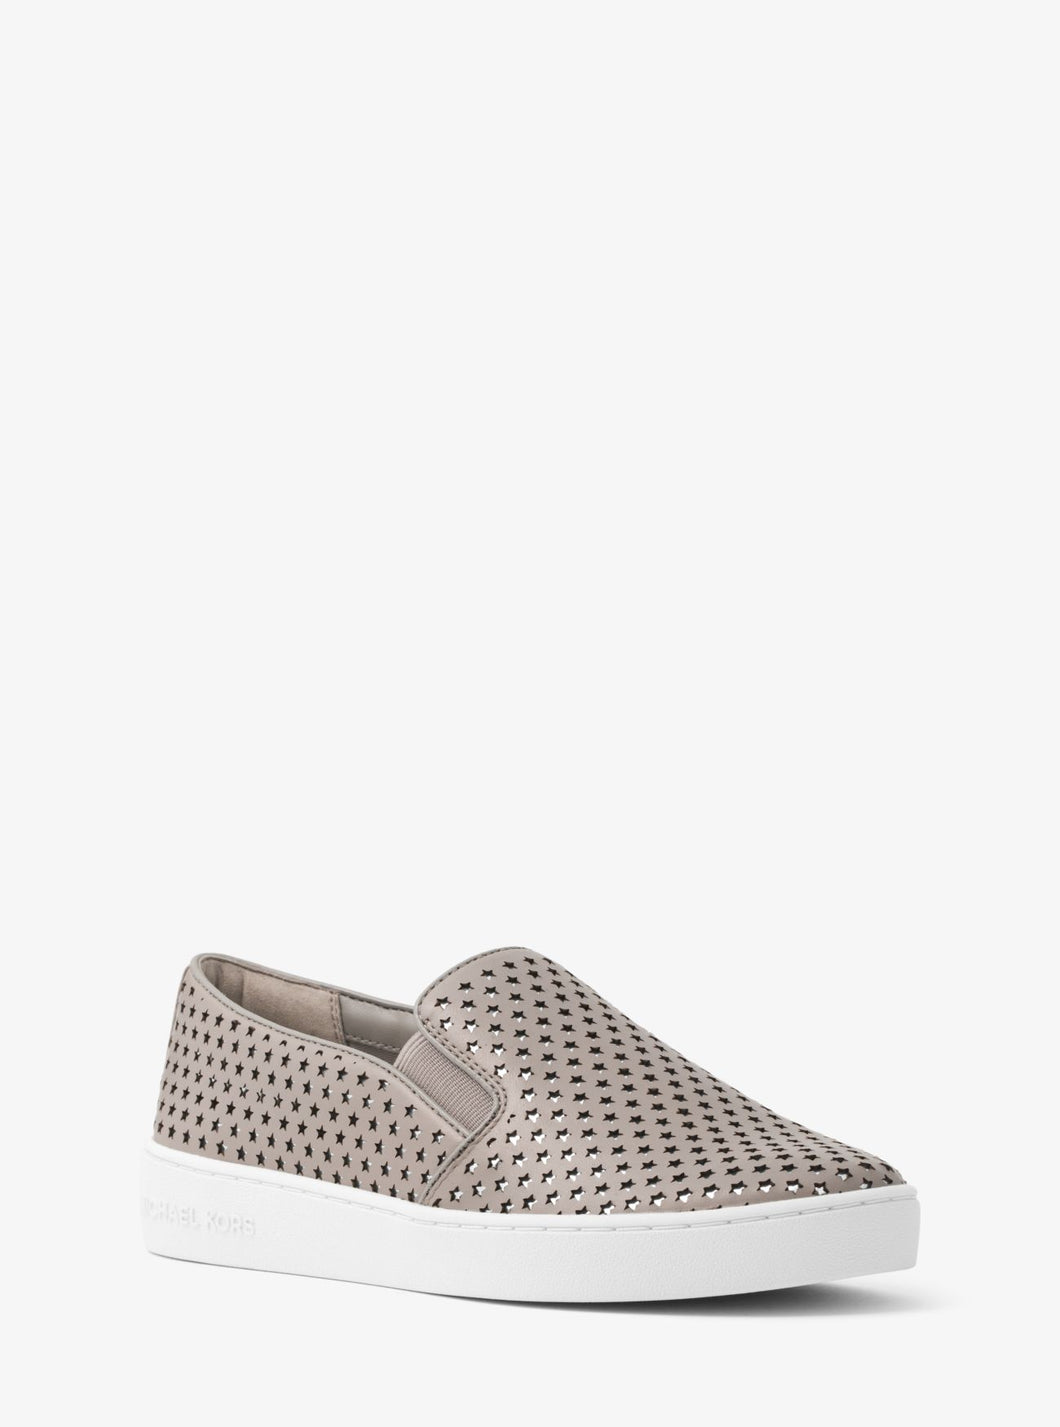 Michael Kors Keaton Leather Slip-On/Grey Sneaker